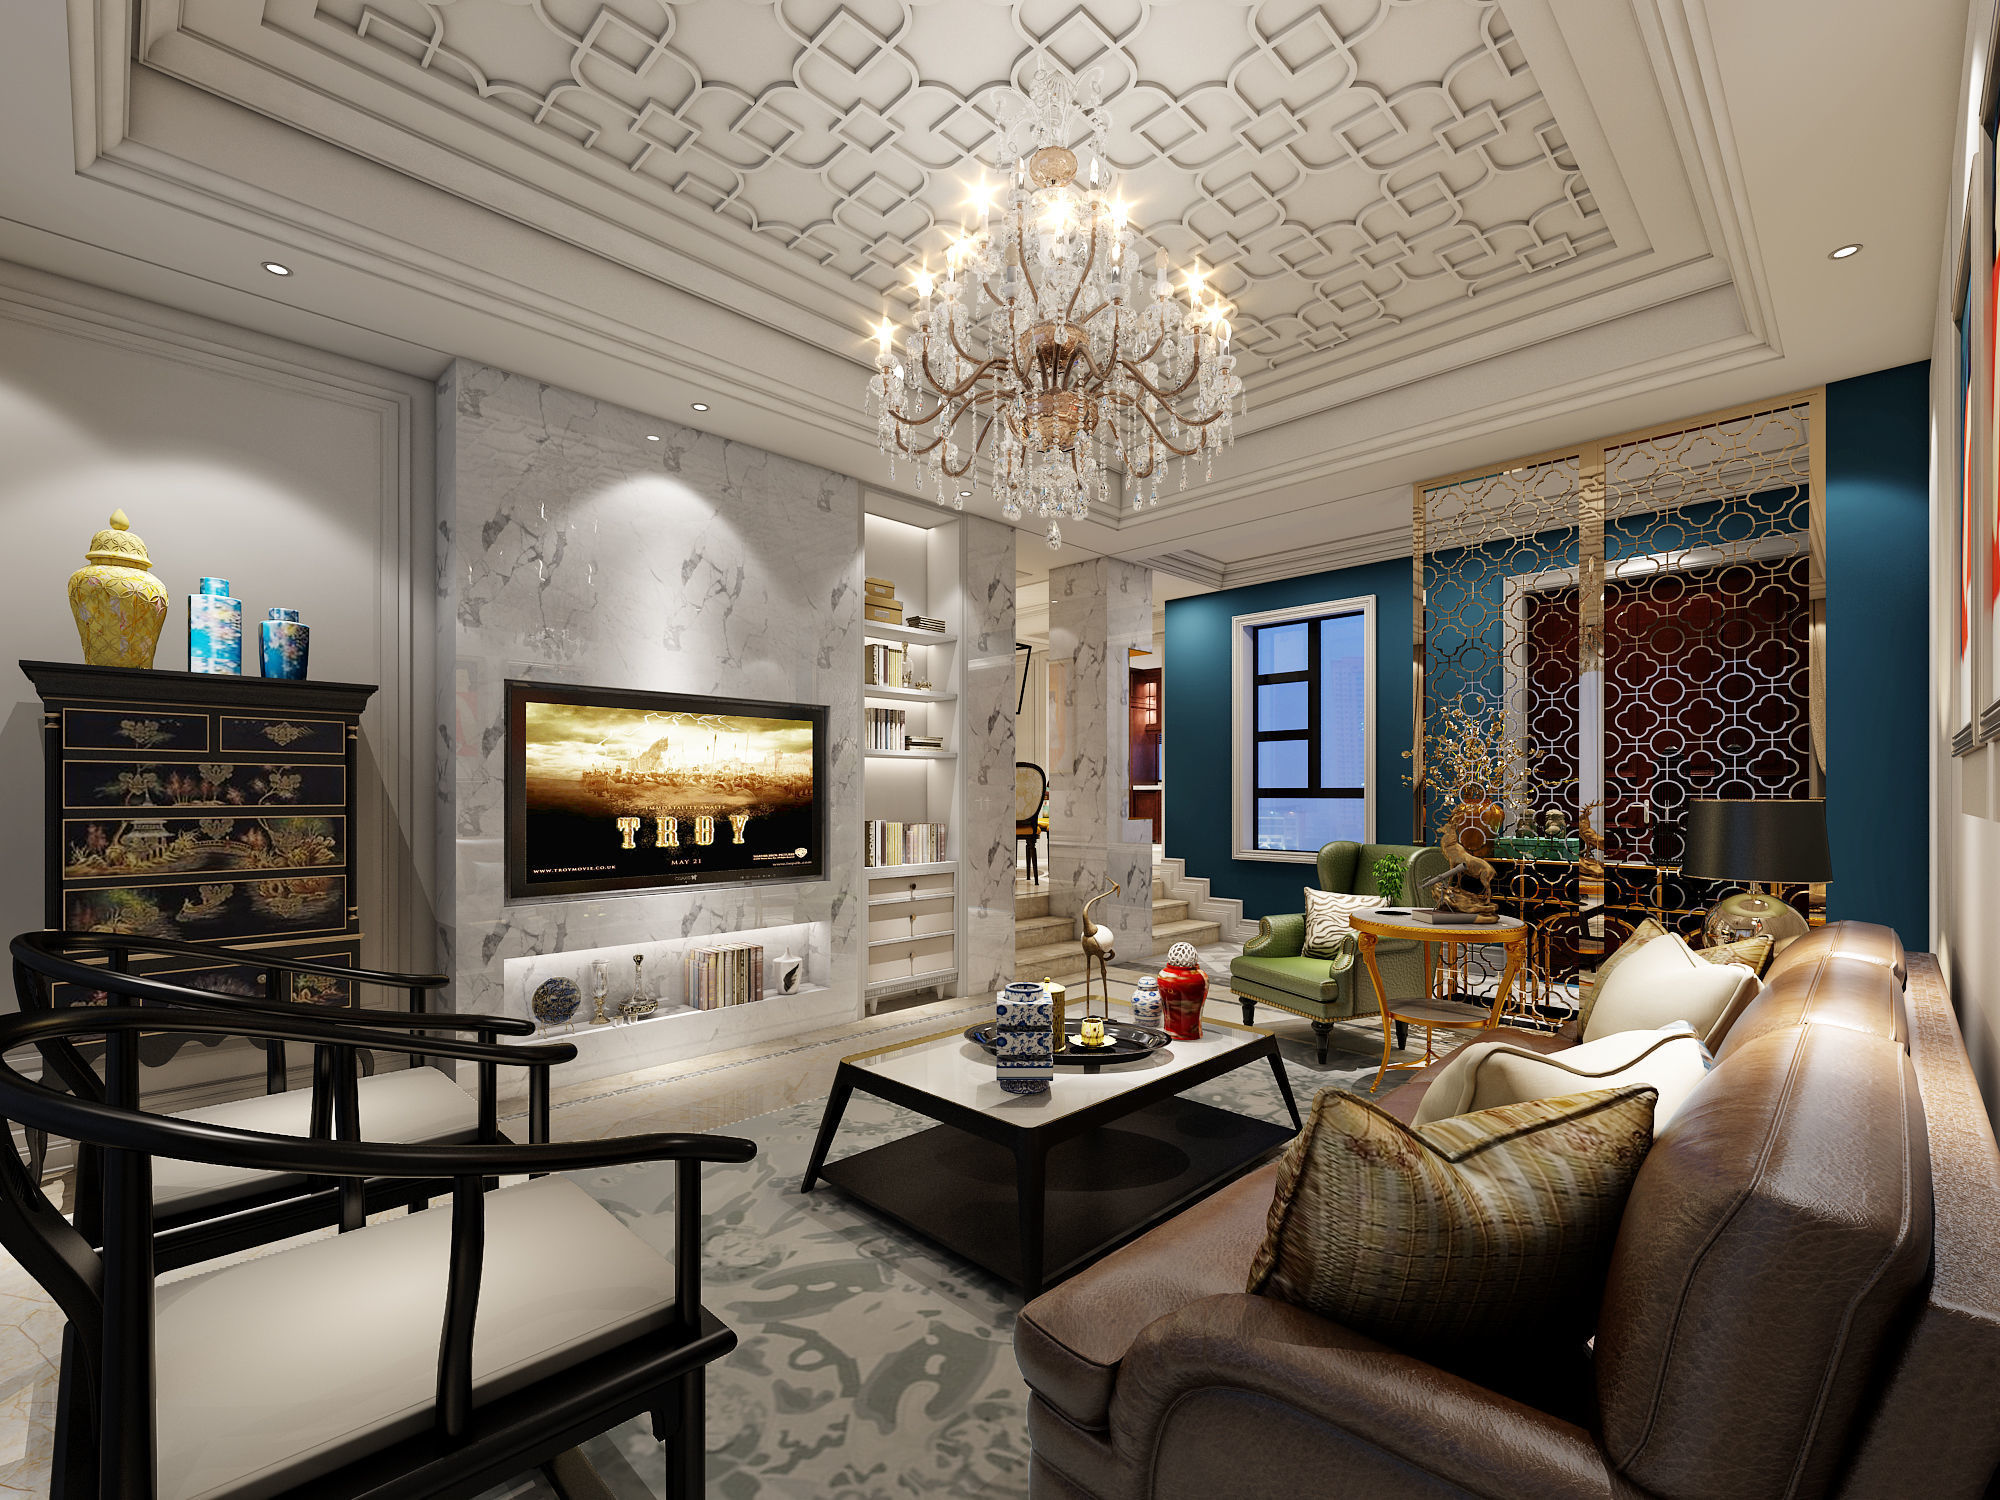 Living room bedroom dining room study complete house model ...